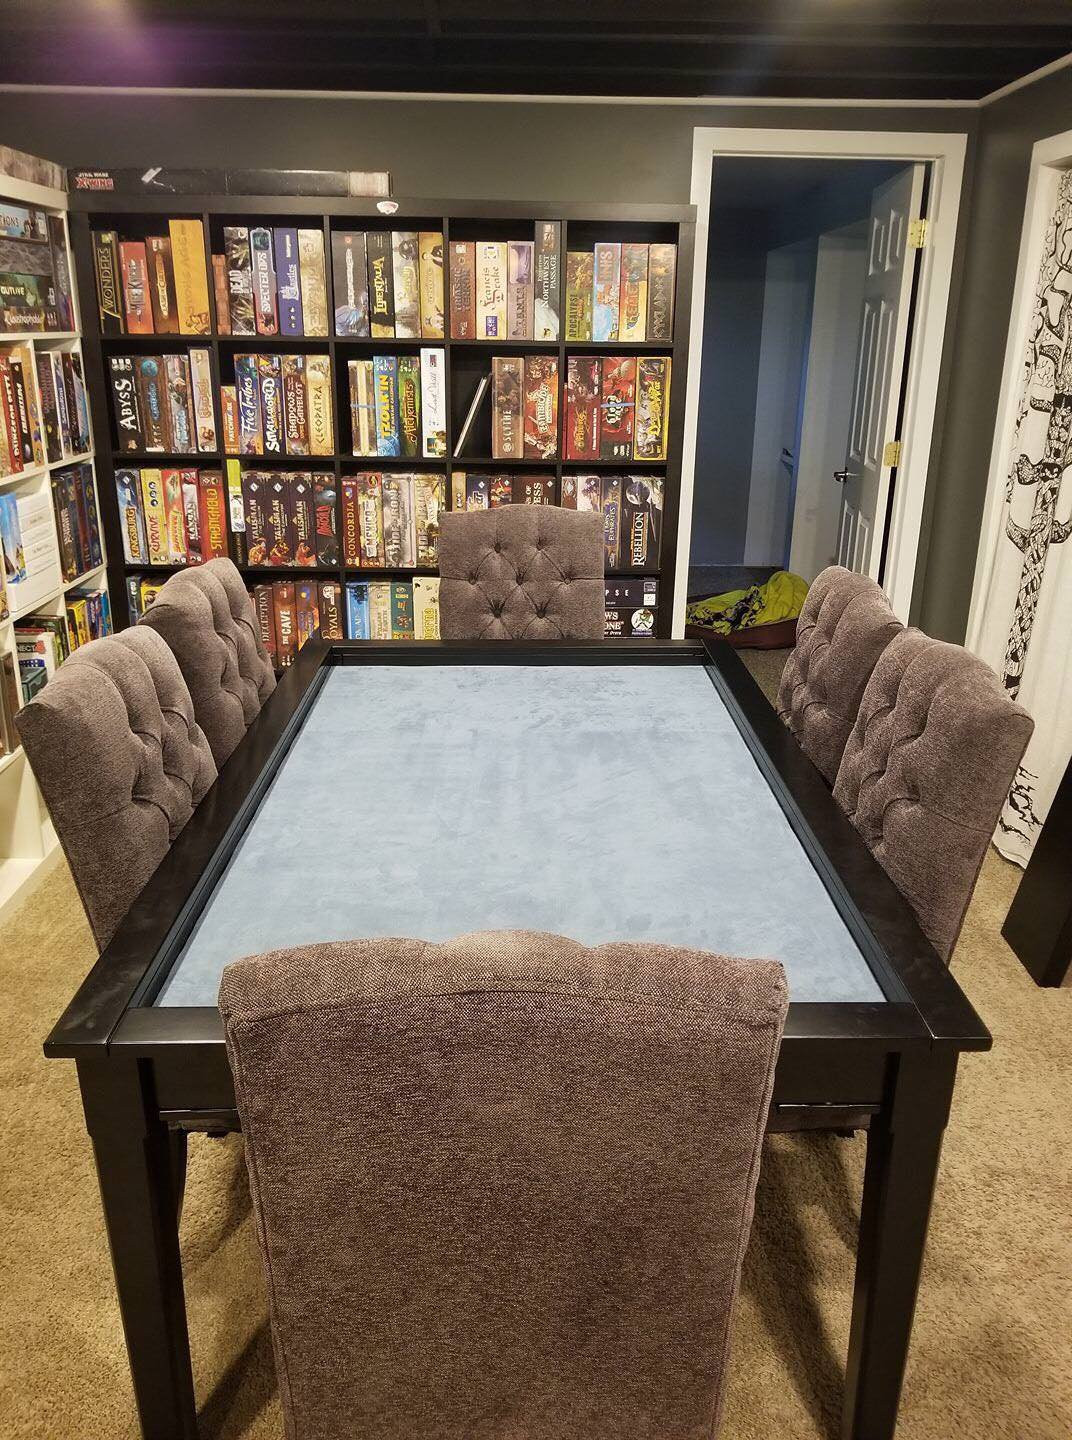 Best ideas about Board Game Room . Save or Pin Board game room pics Now.